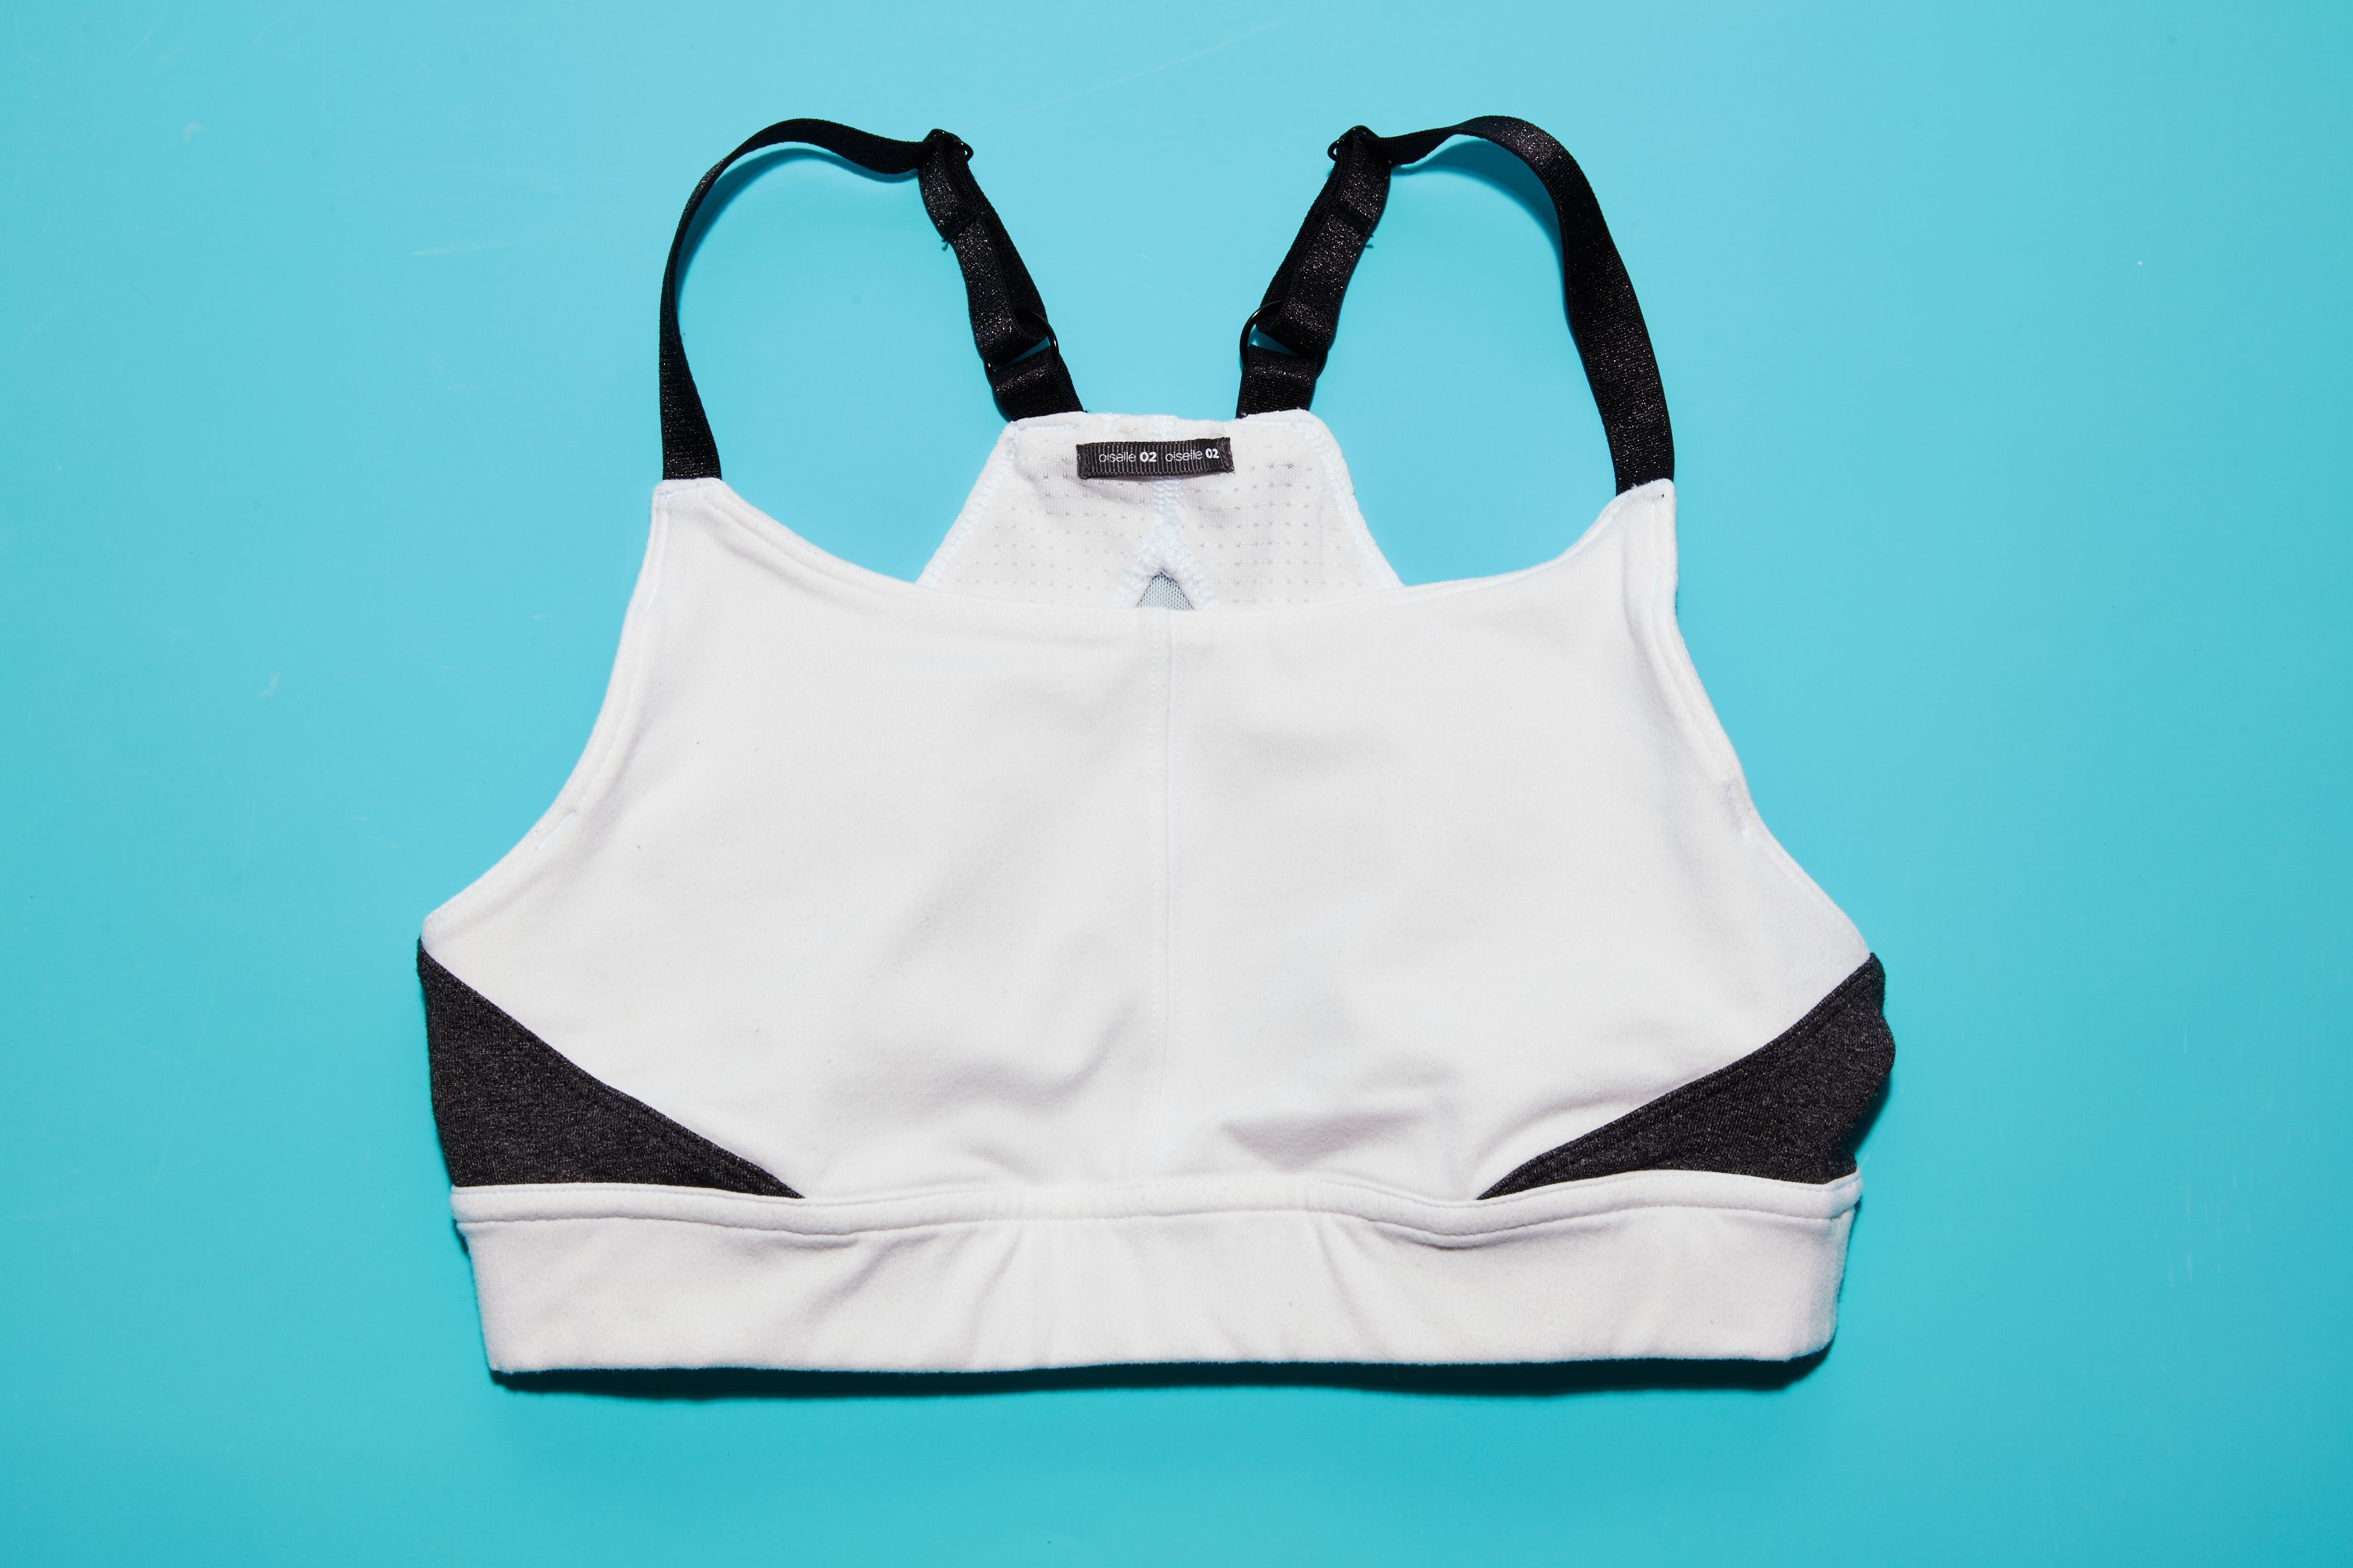 787e2fc347779 Oiselle Sports Bra Review - Medium Support Sports Bras